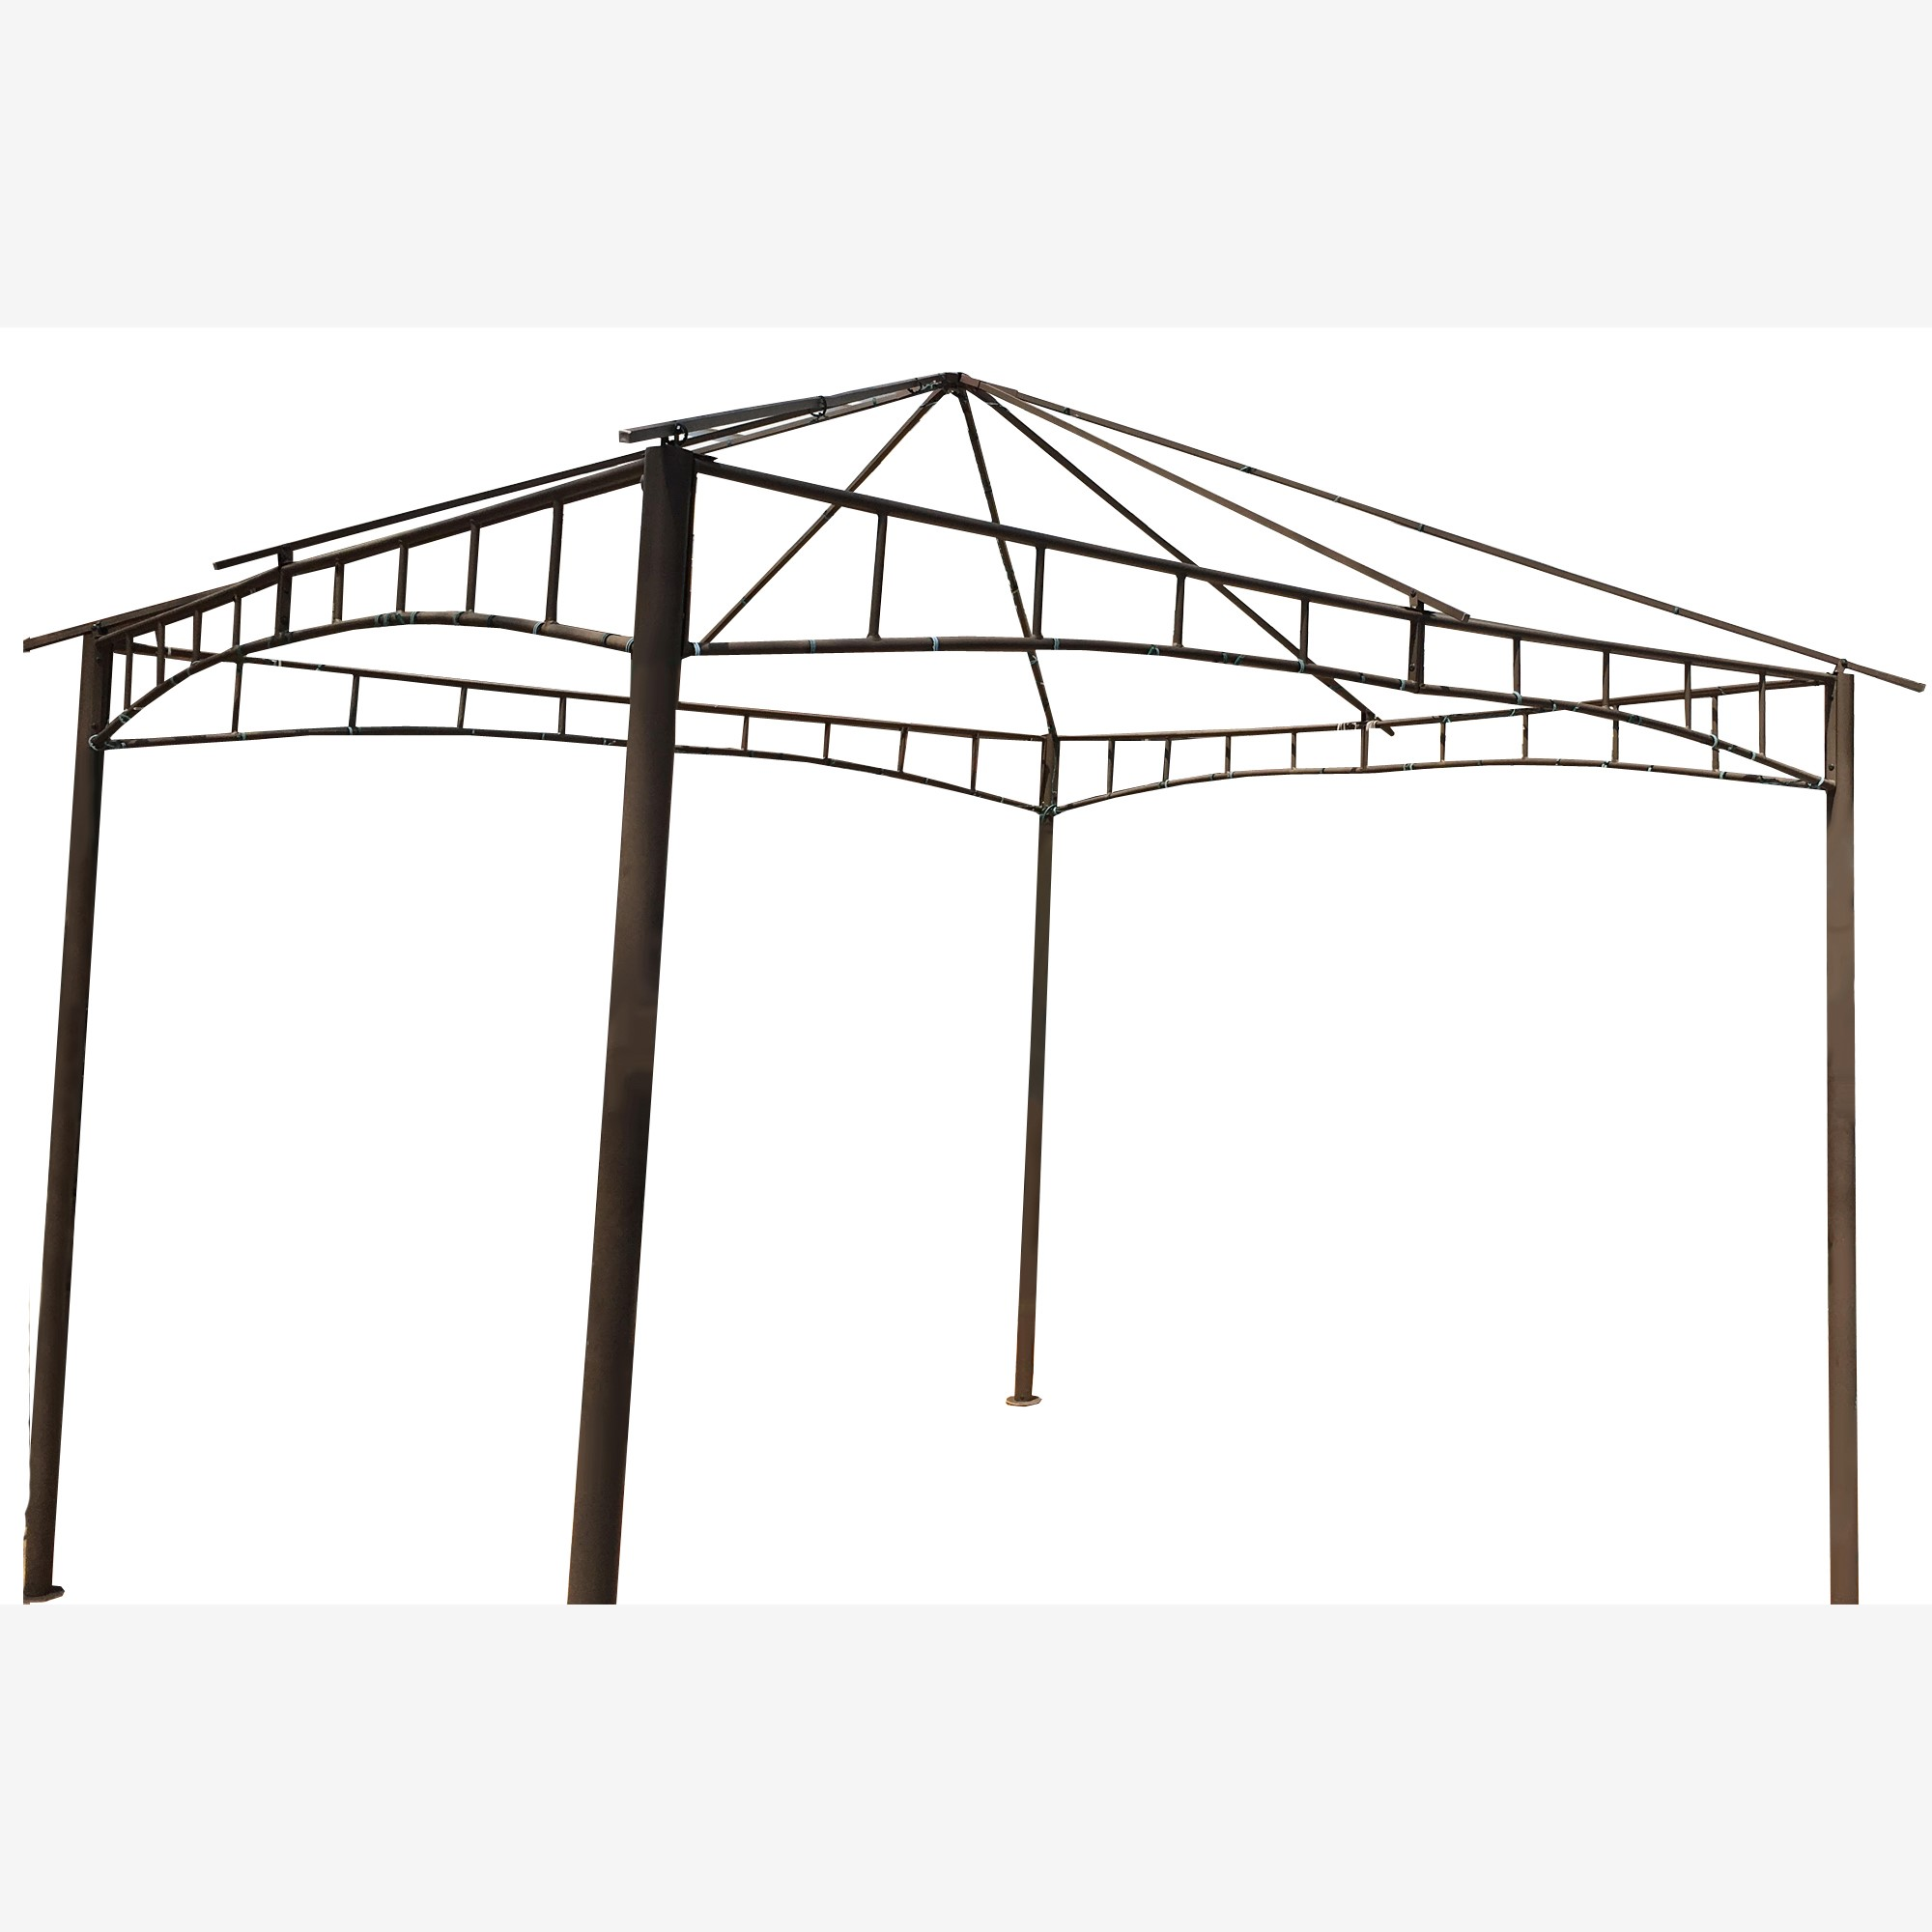 Kohls Summer Living Canopy Replacement Corner Pocket